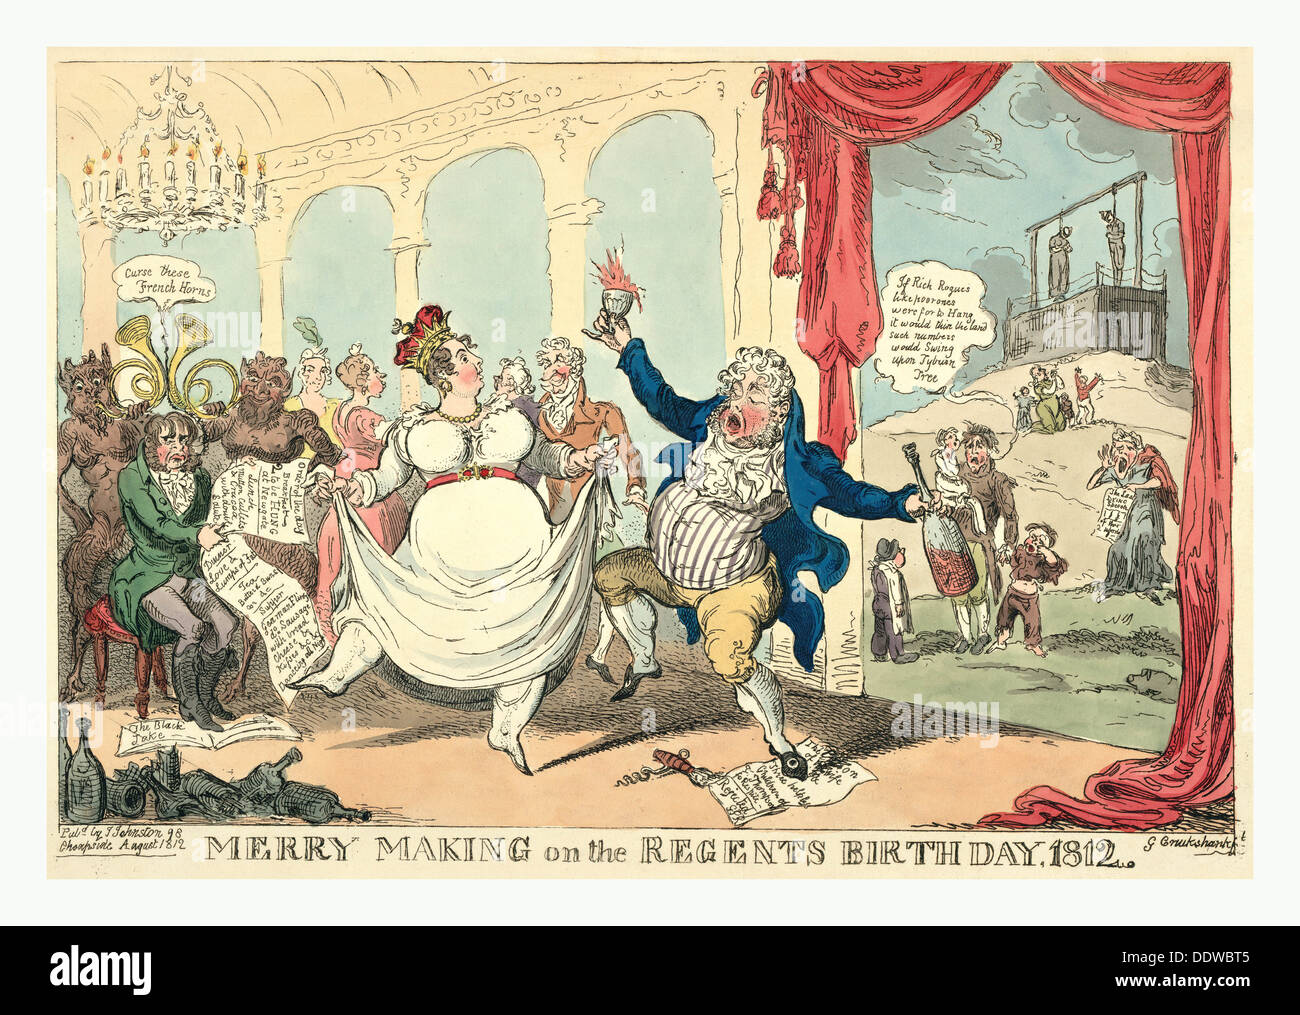 Merry making on the regents birth day, 1812, Cruikshank, George, 1792-1878, etcher, 1812, George, the Prince Regent, dancing - Stock Image